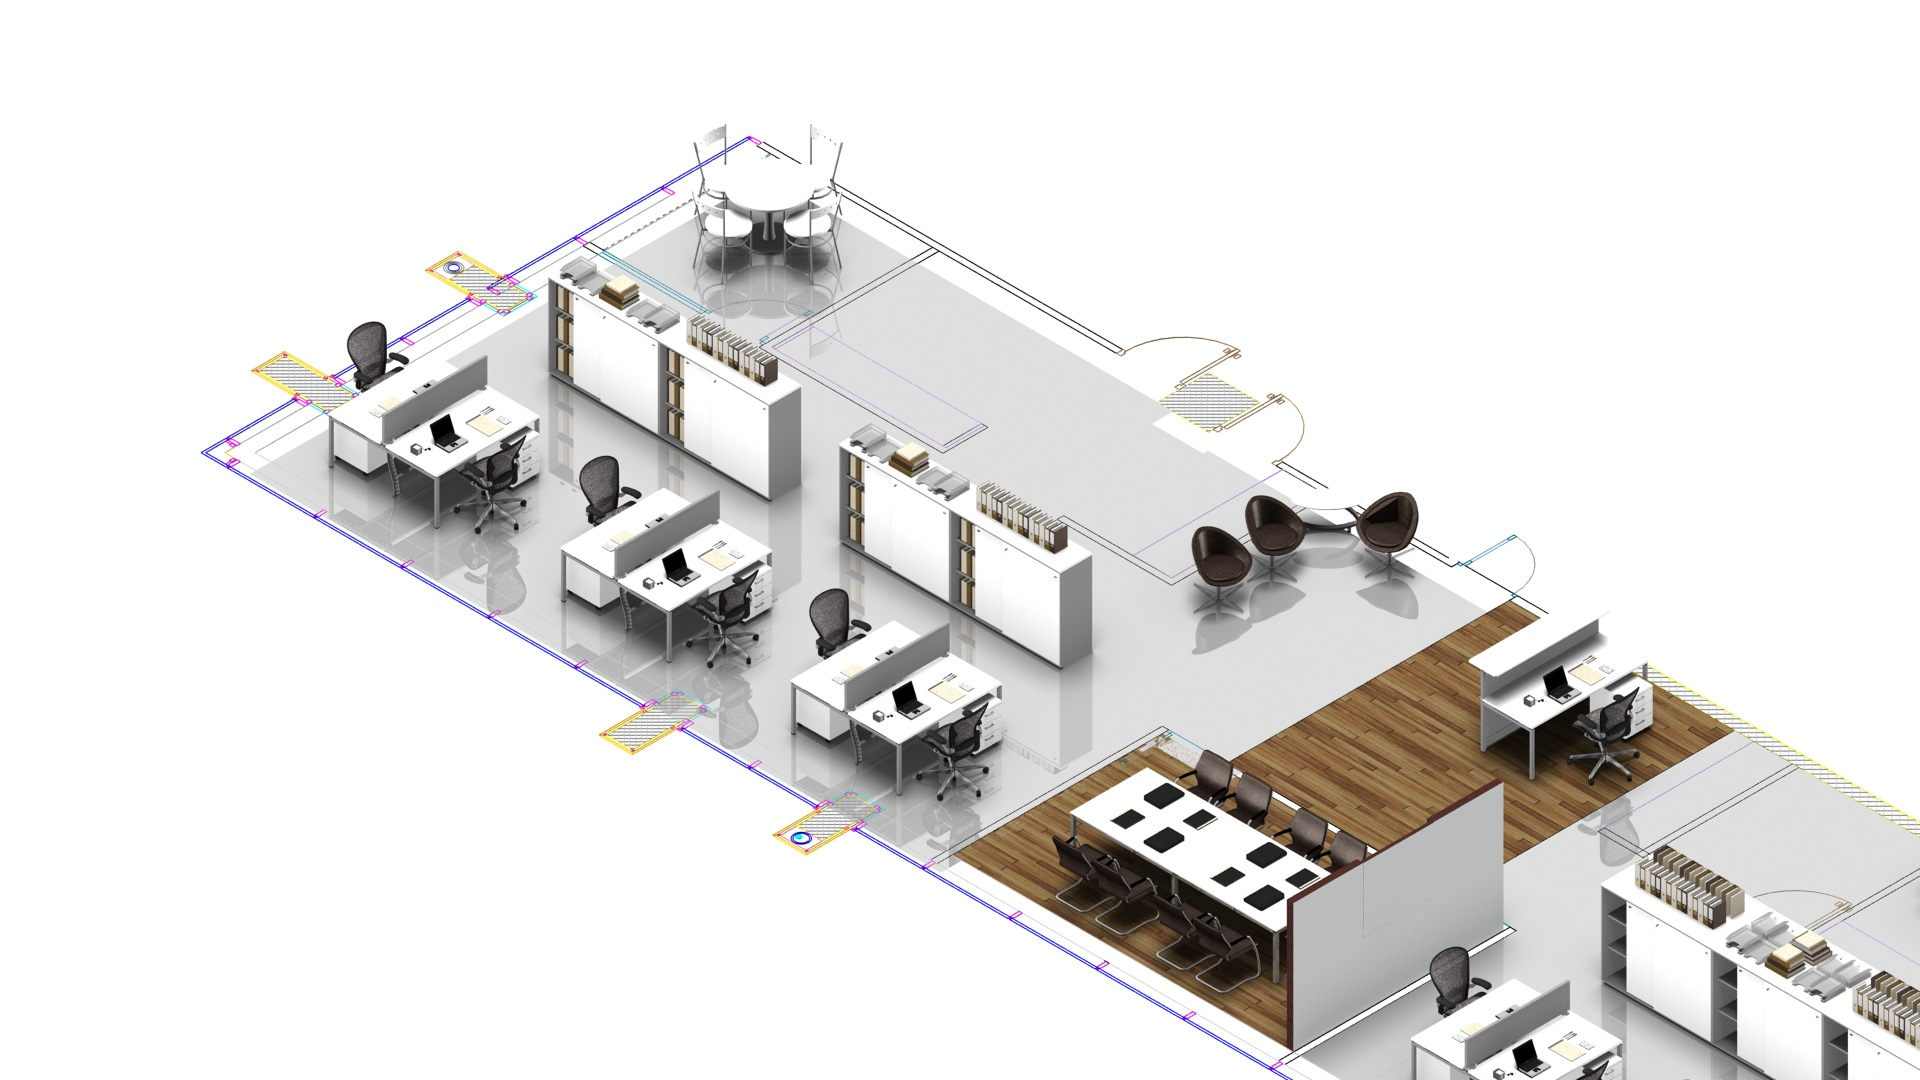 Office Furniture Cad Blocks Free in addition Black And White Furniture Design Cad as well Floor Plan With Furniture Stock Vector further 3d Top View Floor Plans besides Furniture Autocad Drawings. on floor plan symbols chair